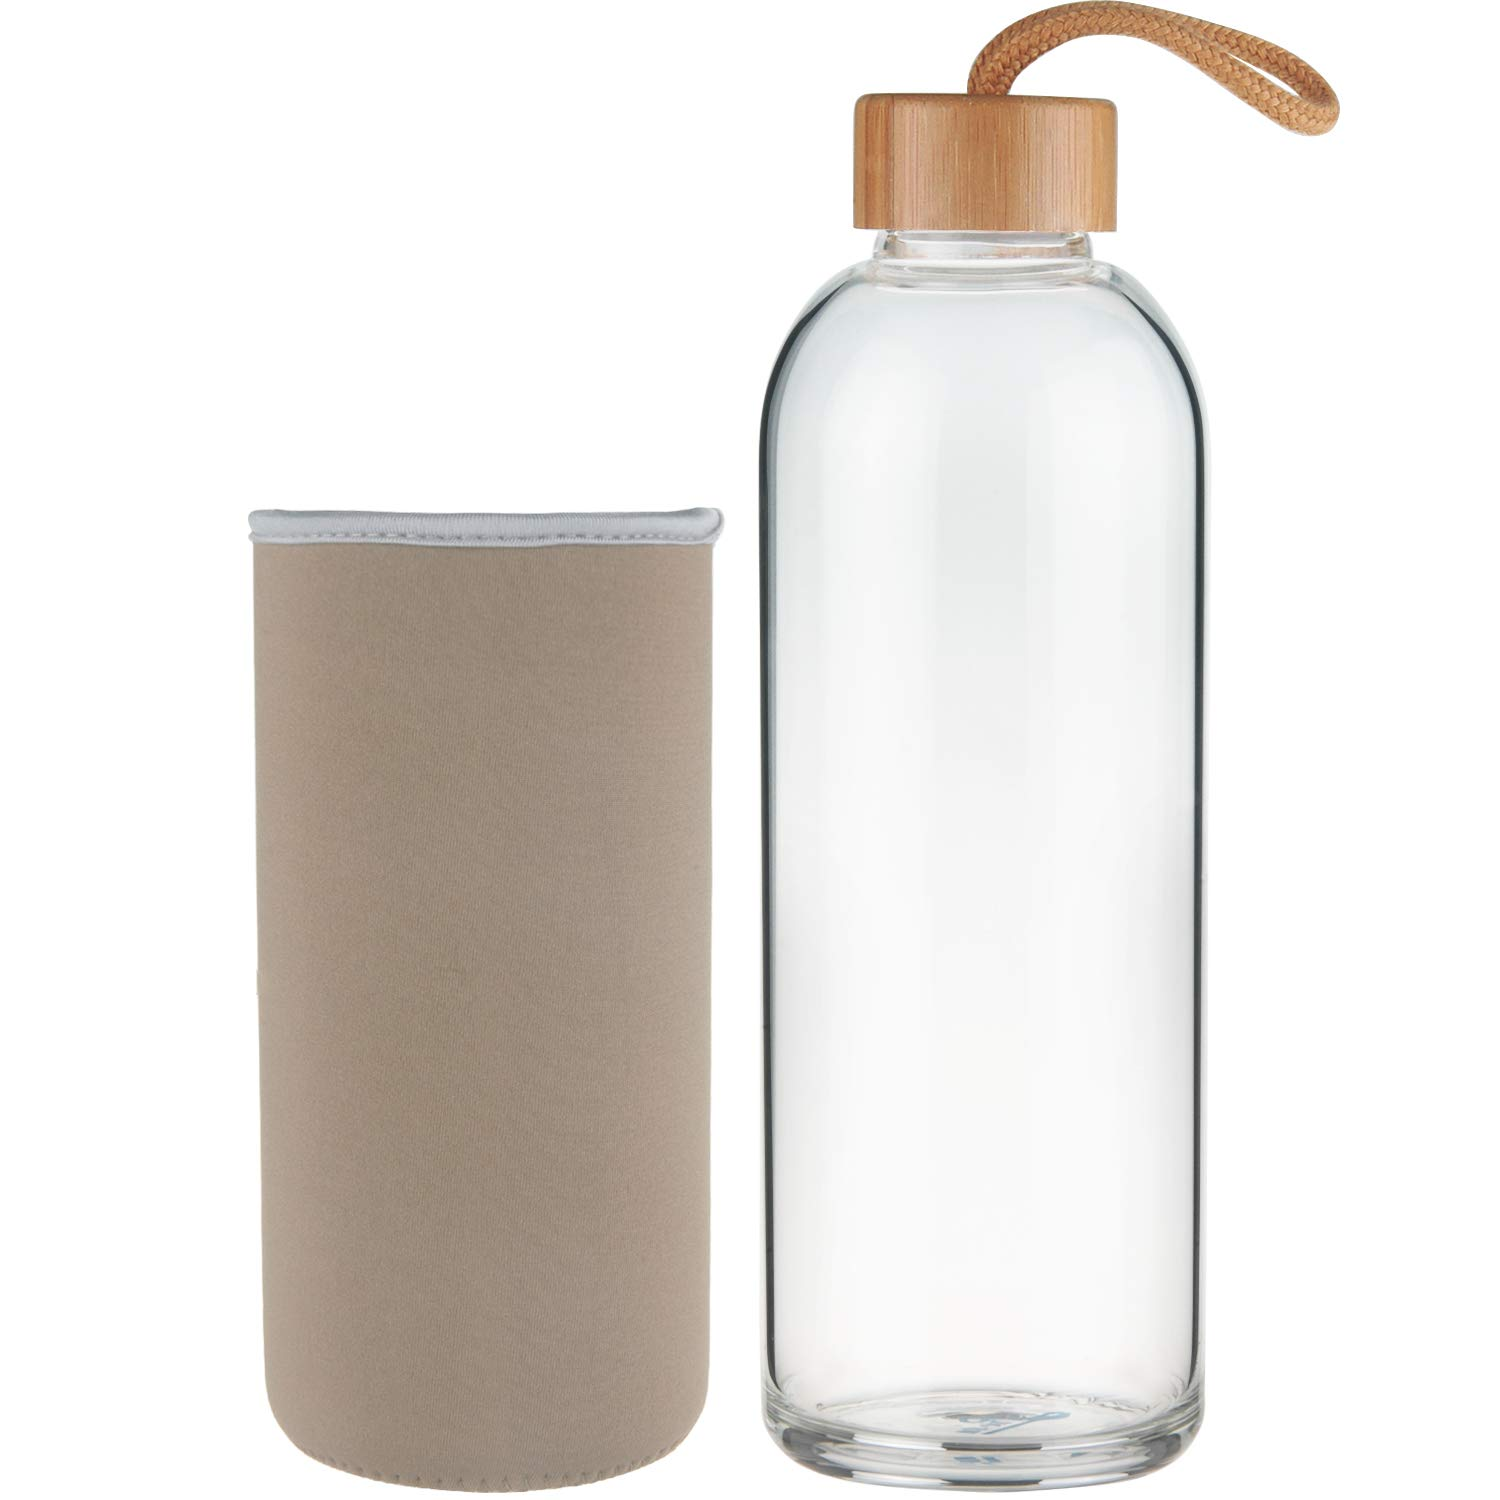 18 oz Ferexer Sports Borosilicate Glass Water Bottle with Bamboo Lid with Neoprene Sleeve 32 oz